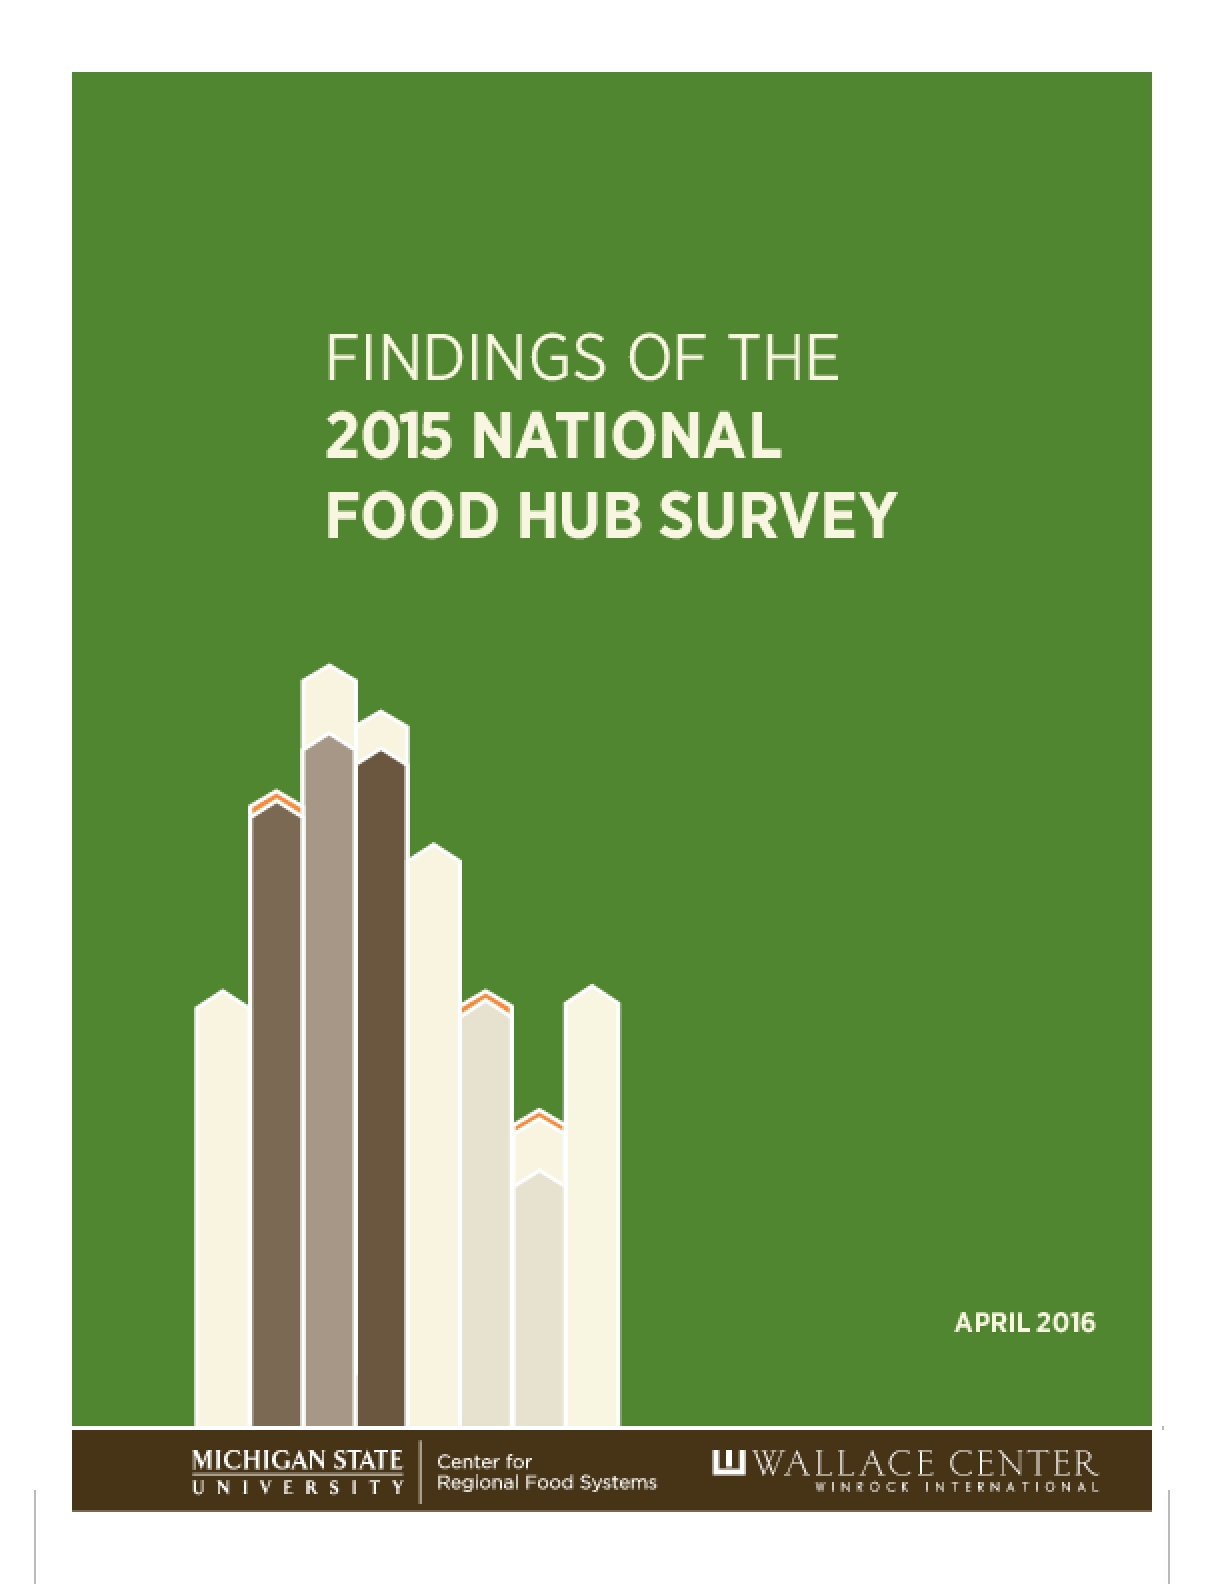 Findings of the 2015 National Food Hub Survey